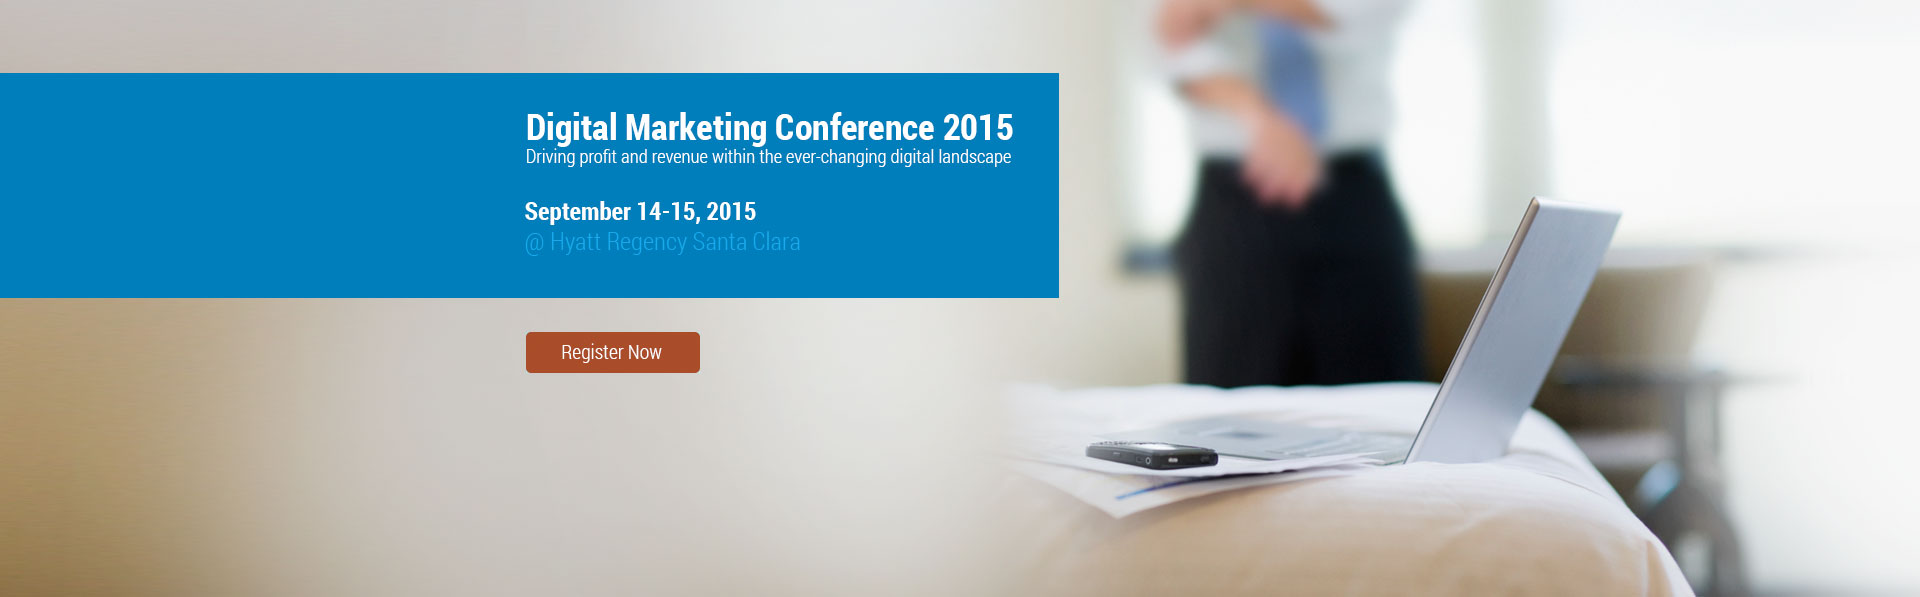 2015 Digital Marketing Conference.jpg